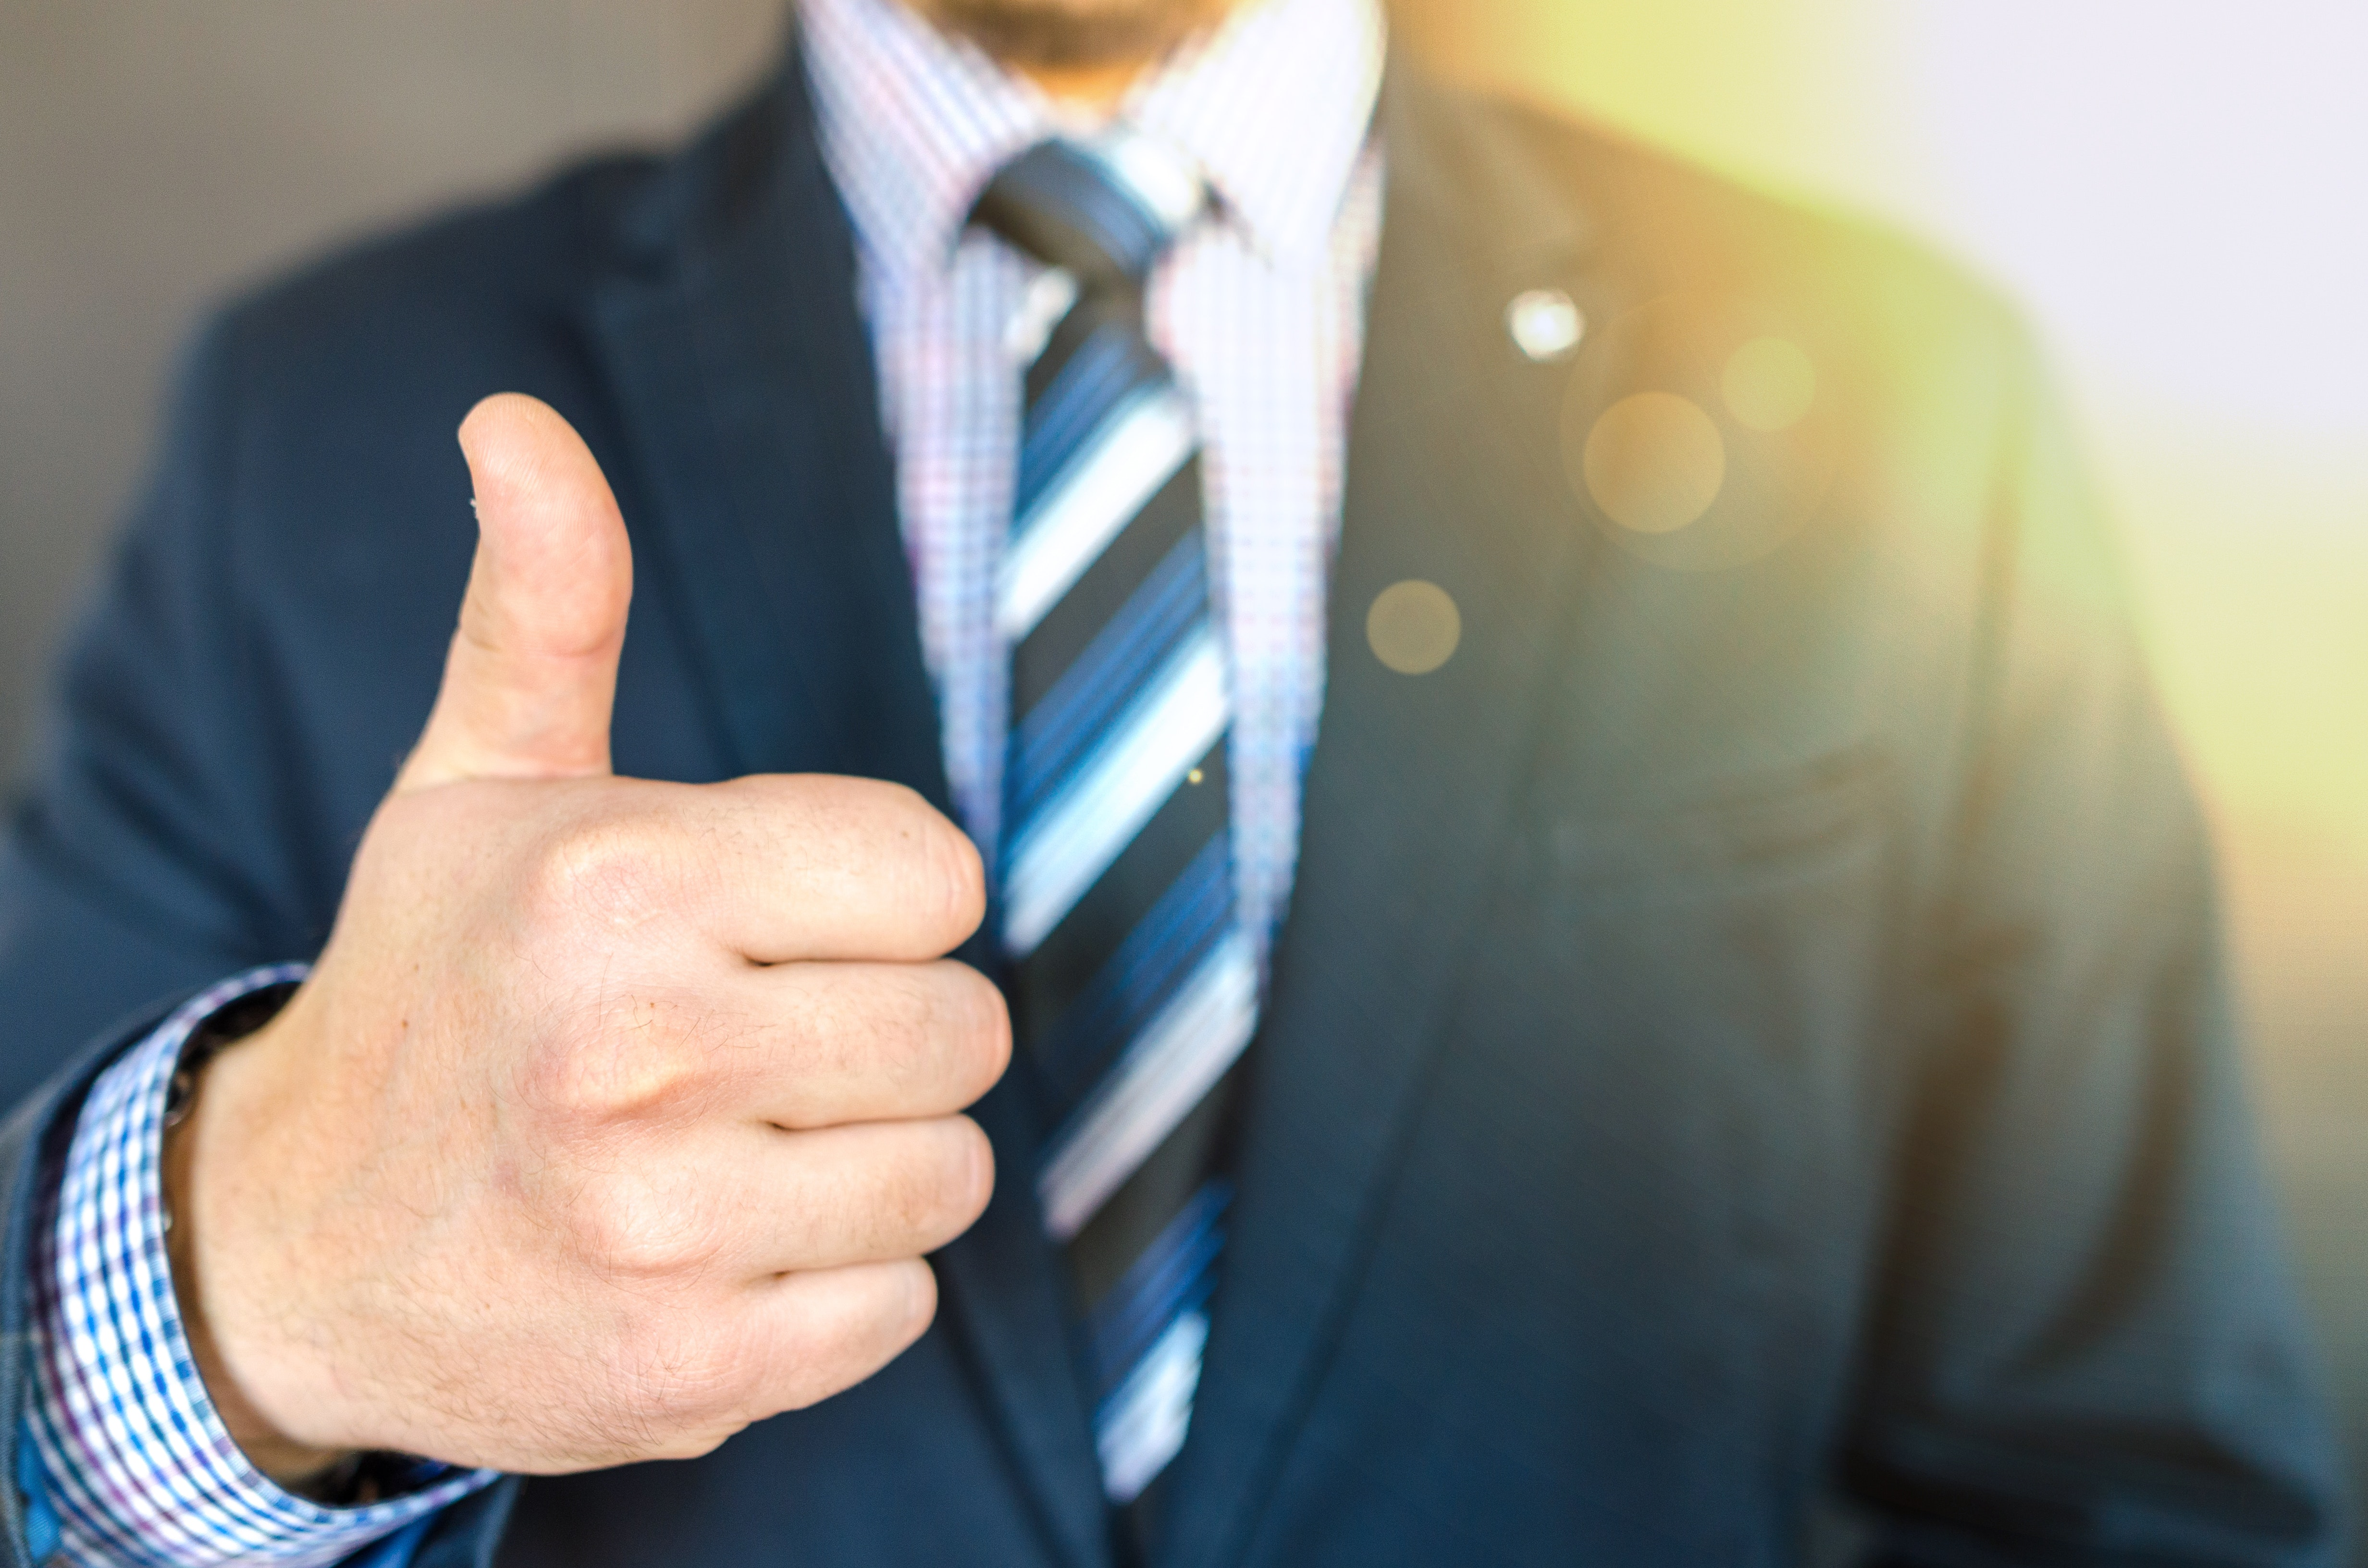 Close-up photo of man wearing black suit jacket doing thumbs up gesture